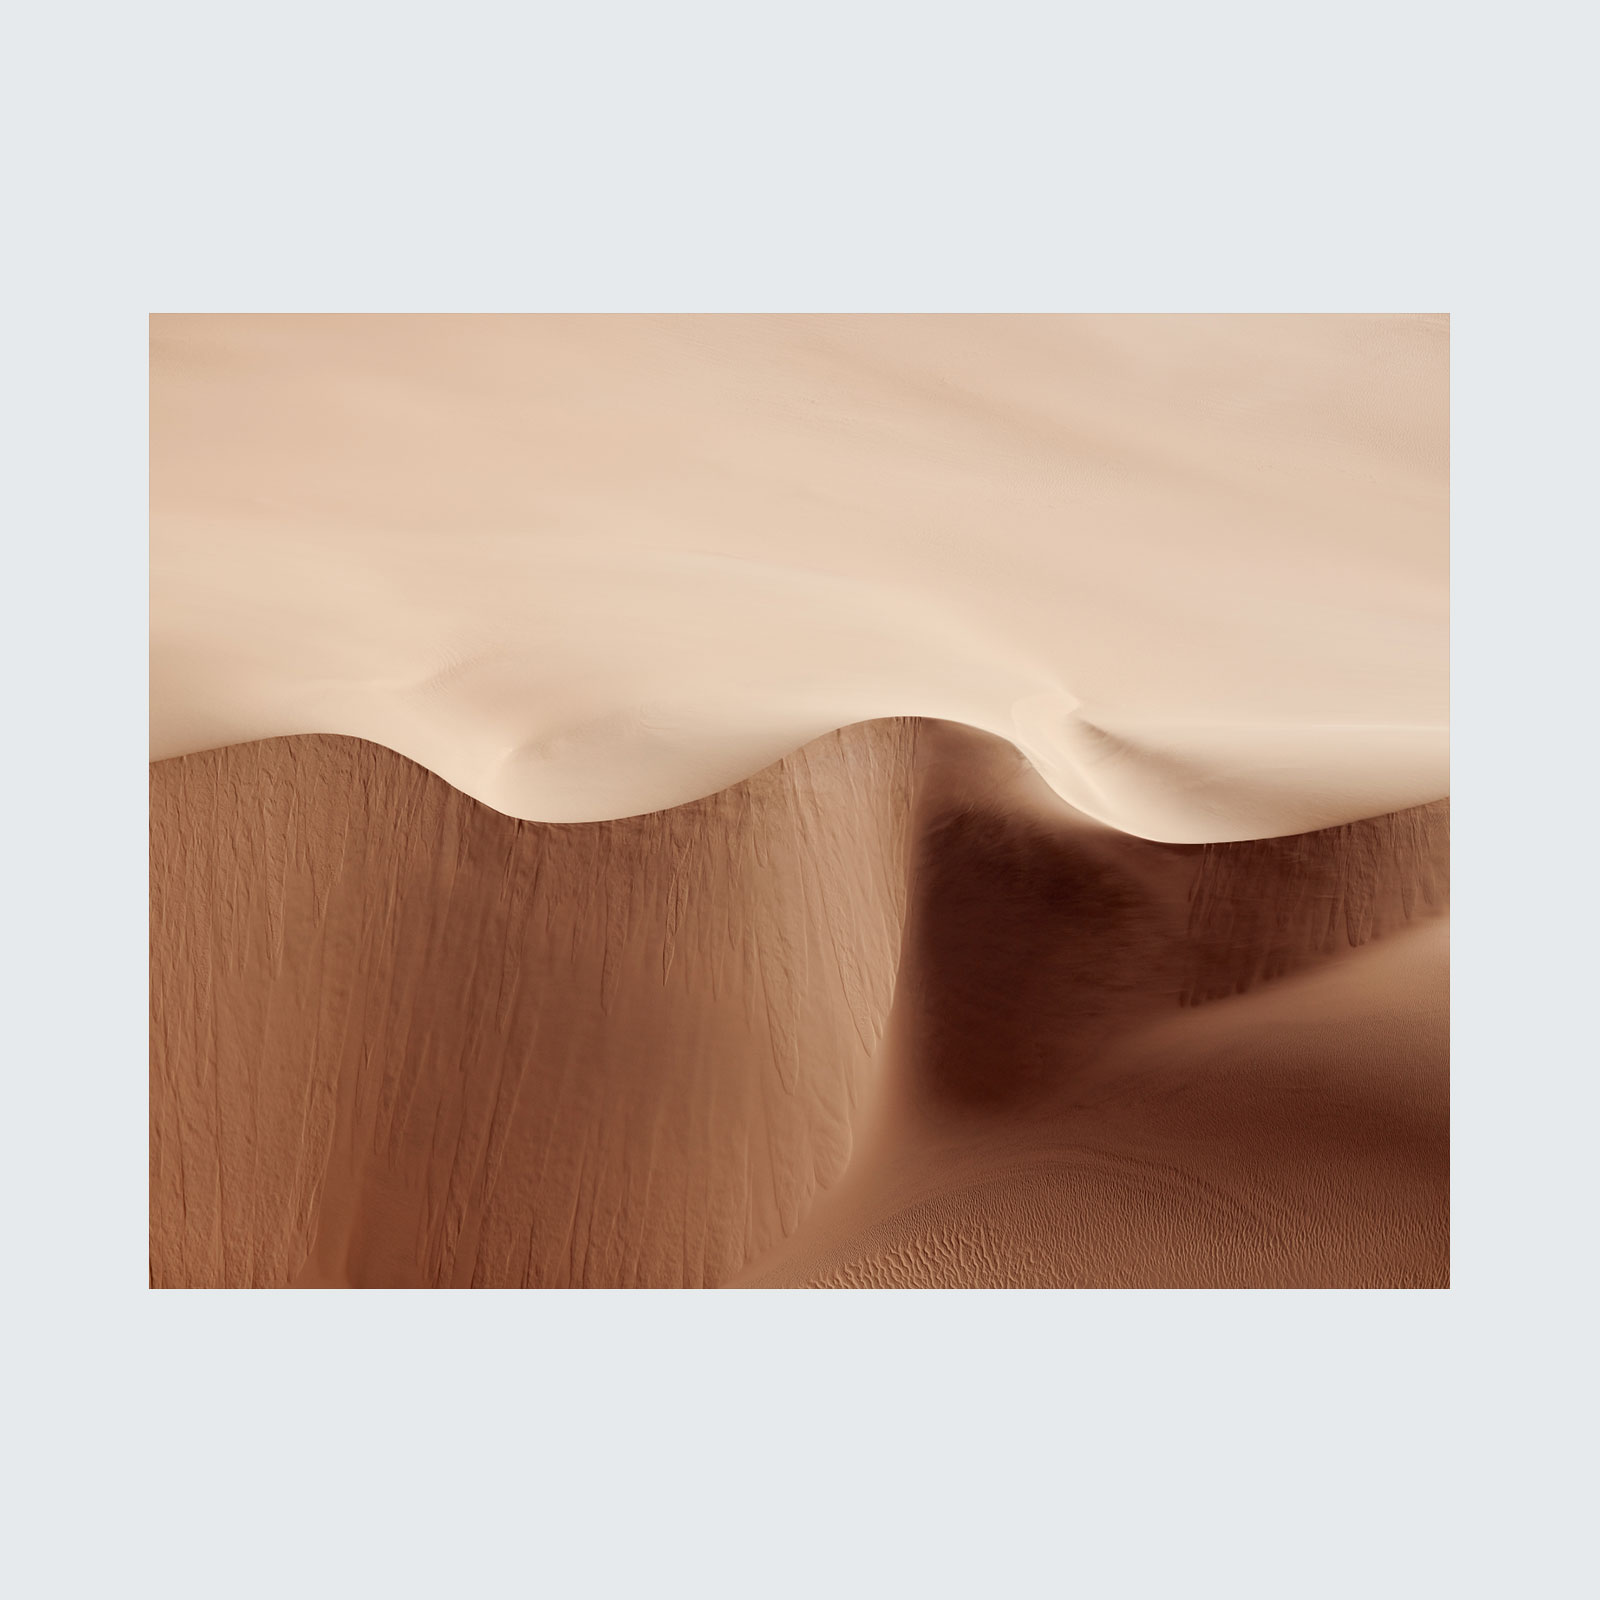 Brooke Holm Sand Sea Ix Photograph